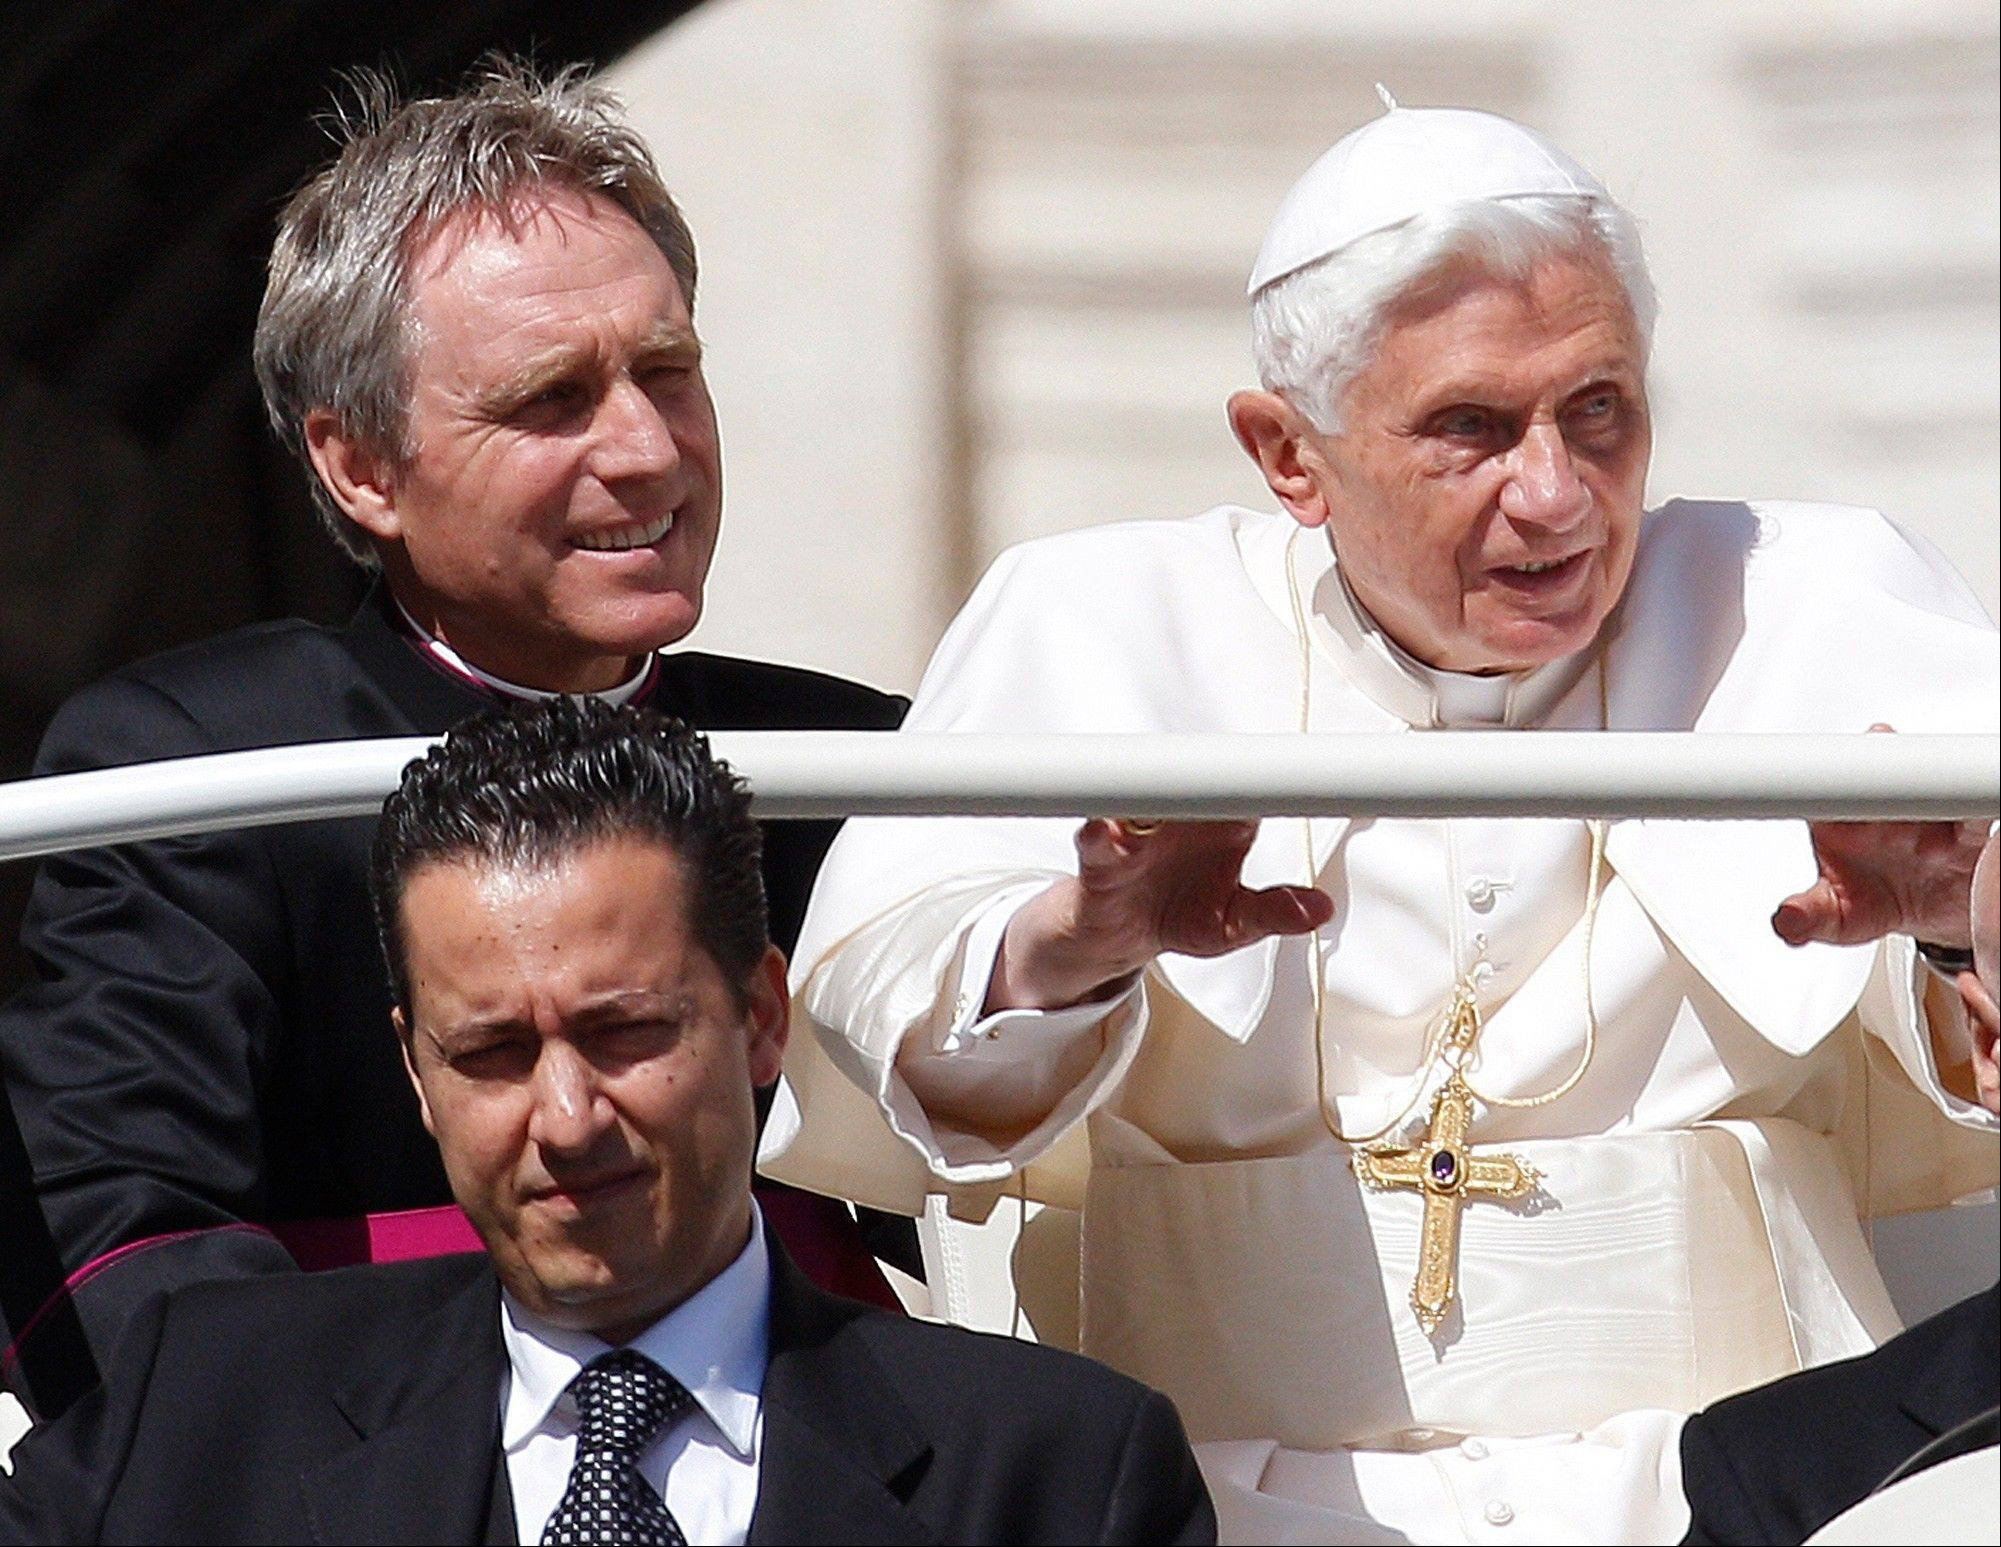 In this file photo, Pope Benedict XVI arrives in St. Peter's square as his then-butler Paolo Gabriele, bottom, and his personal secretary Georg Gaenswein sit in the car with him. Pope Benedict XVI's ex-butler Paolo Gabriele and another Vatican lay employee, Claudio Sciarpelletti, are scheduled to go on trial Saturday, Sept. 29, 2012, in the embarrassing theft of papal documents that exposed alleged corruption at the Holy See's highest levels.